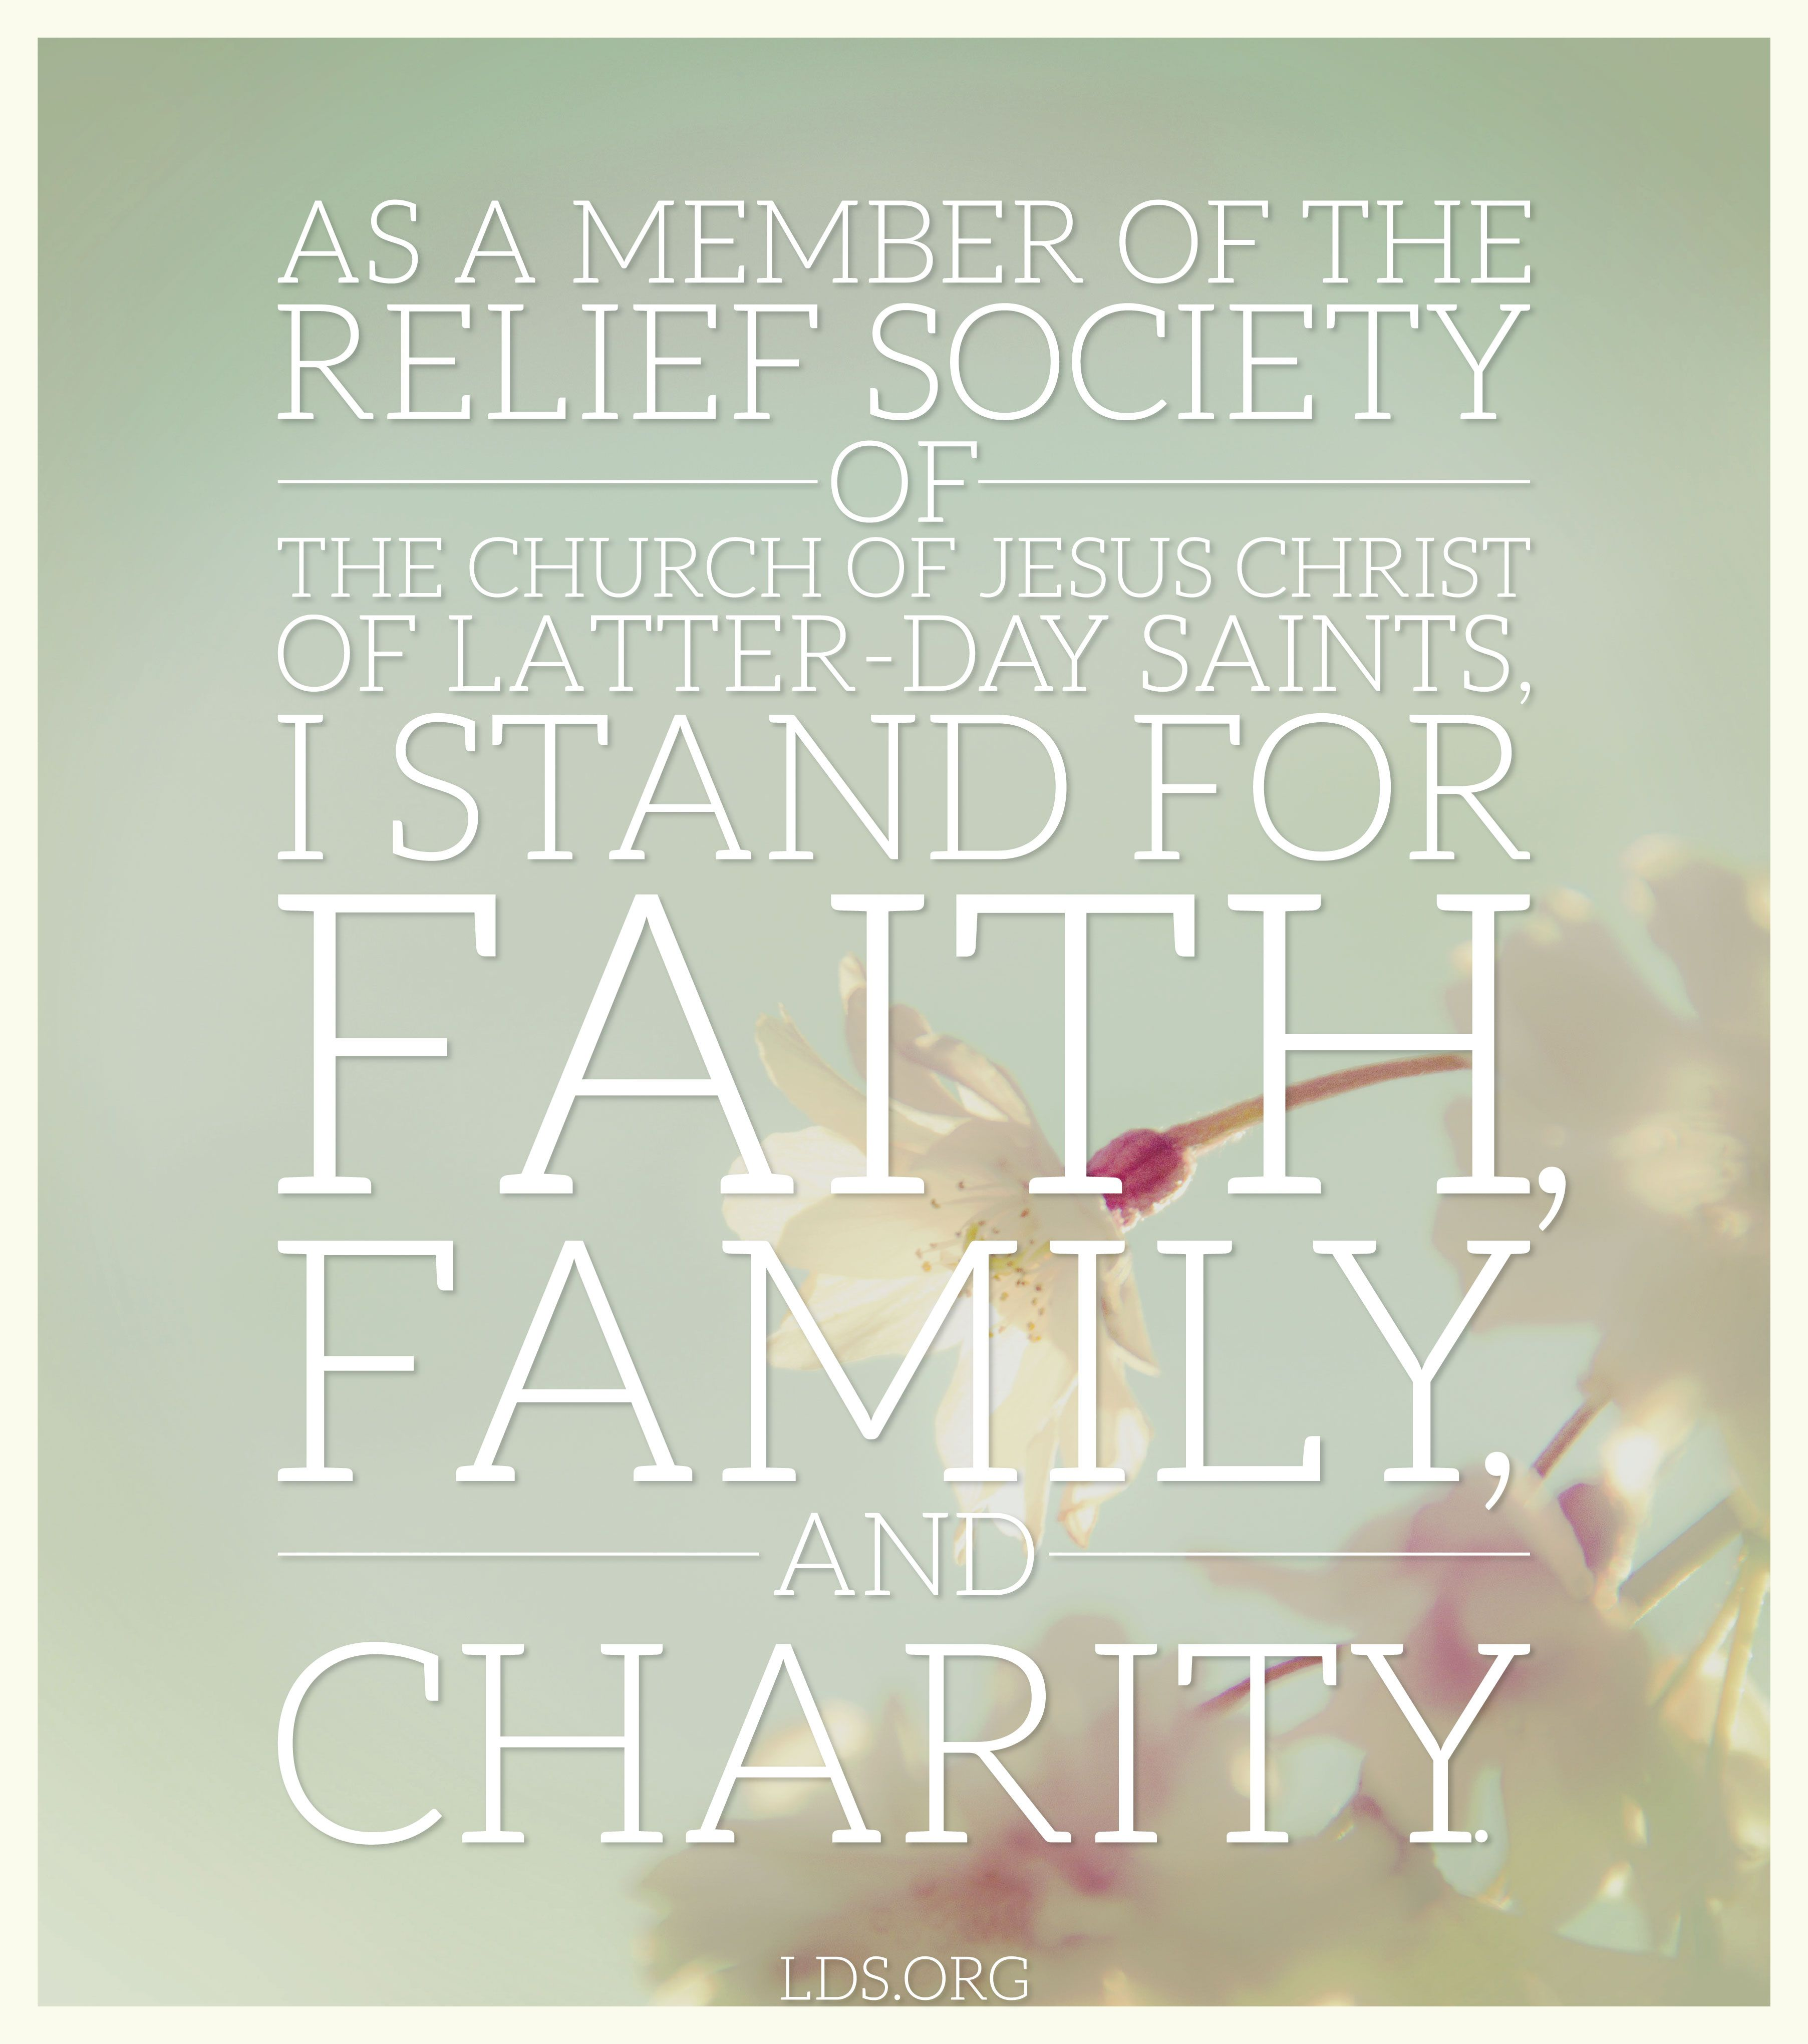 As A Member Of The Relief Society Of The Church Of Jesus